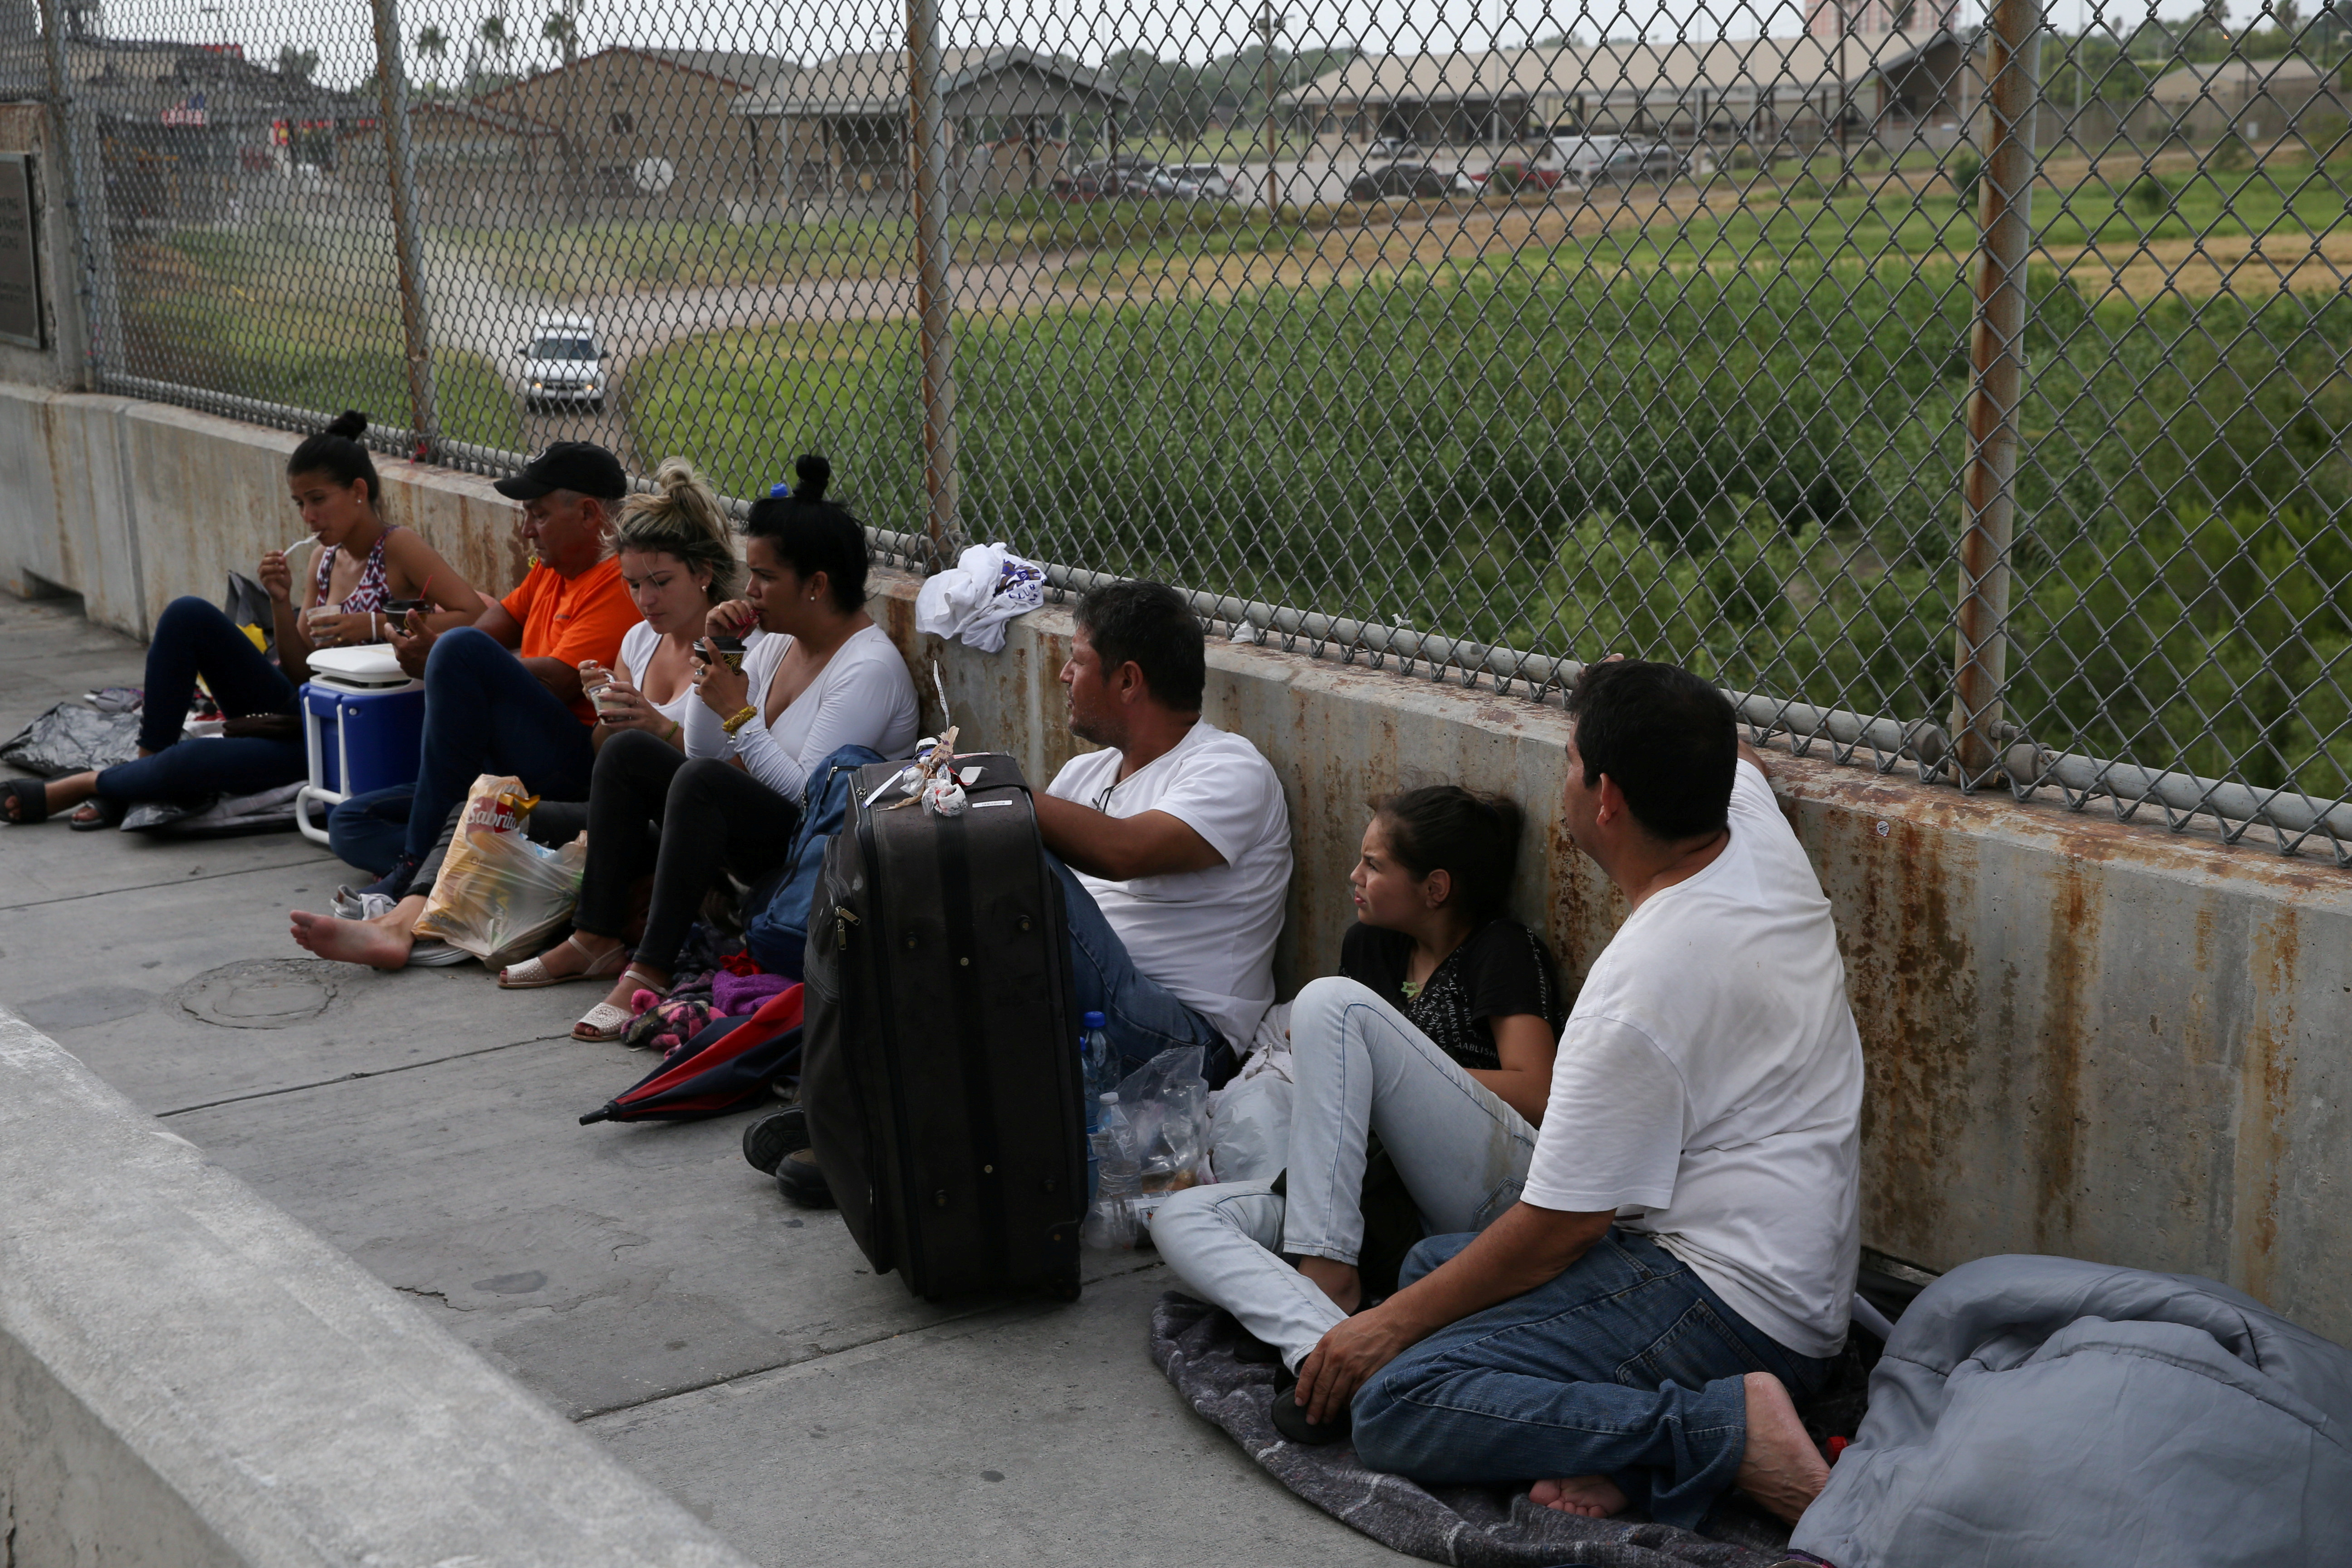 Asylum seekers wait on the Mexican side of the Brownsville-Matamoros International Bridge after being denied entry by U.S. Customs and Border Protection officers near Brownsville, Texas, U.S., July 25, 2018.  REUTERS/Loren Elliott/File Photo